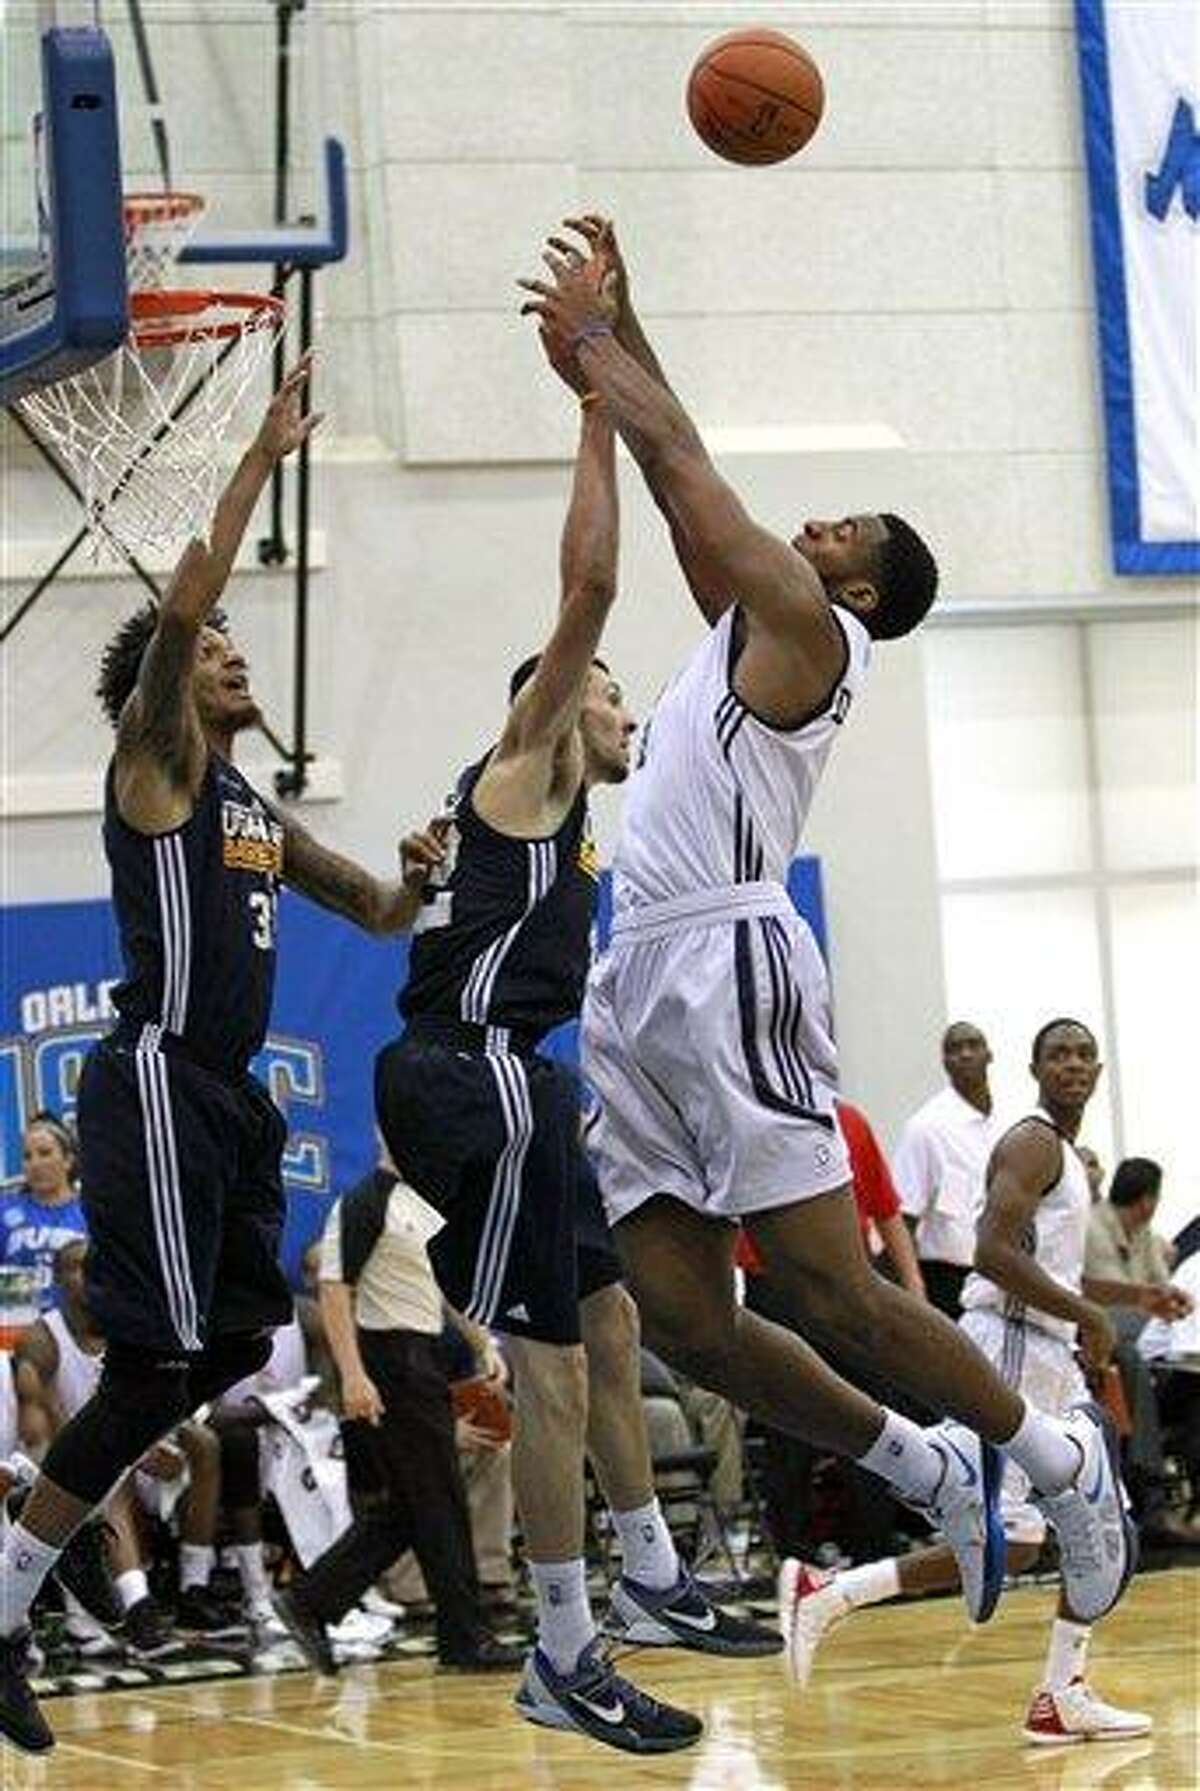 Detroit Pistons' Andre Drummond, right, goes for a rebound against Utah Jazz's Deron Washington, left, and Tony Gaffney, center, during an NBA summer league basketball game, Monday, July 9, 2012, in Orlando, Fla. (AP Photo/John Raoux)